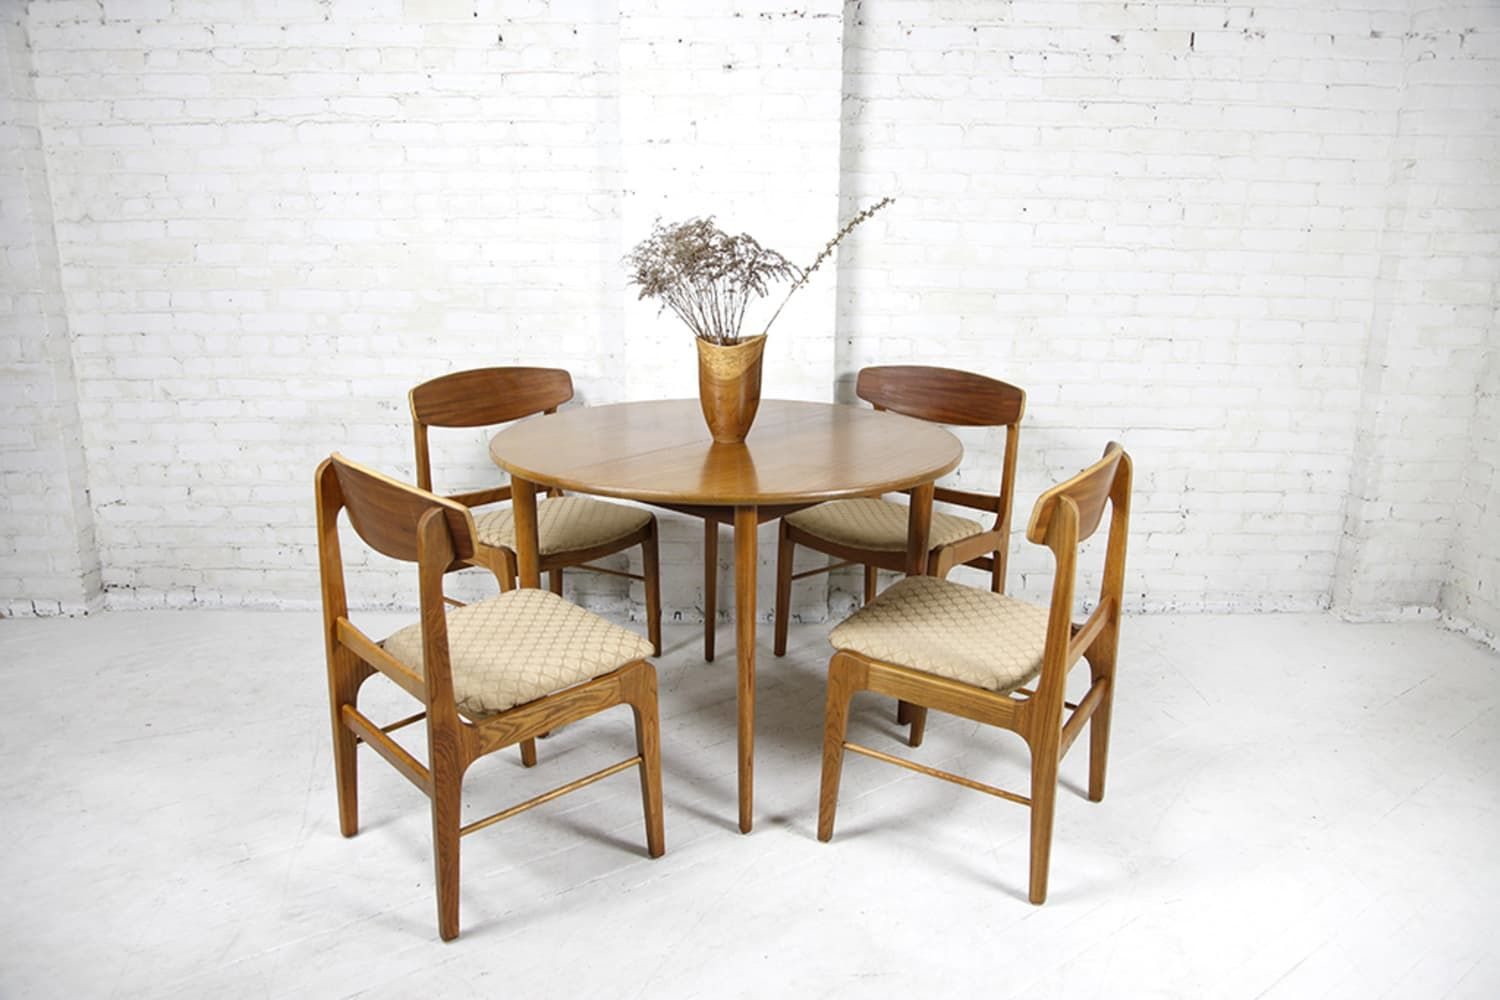 Take a Seat at One of These 8 Dining Tables Available on Bazaar